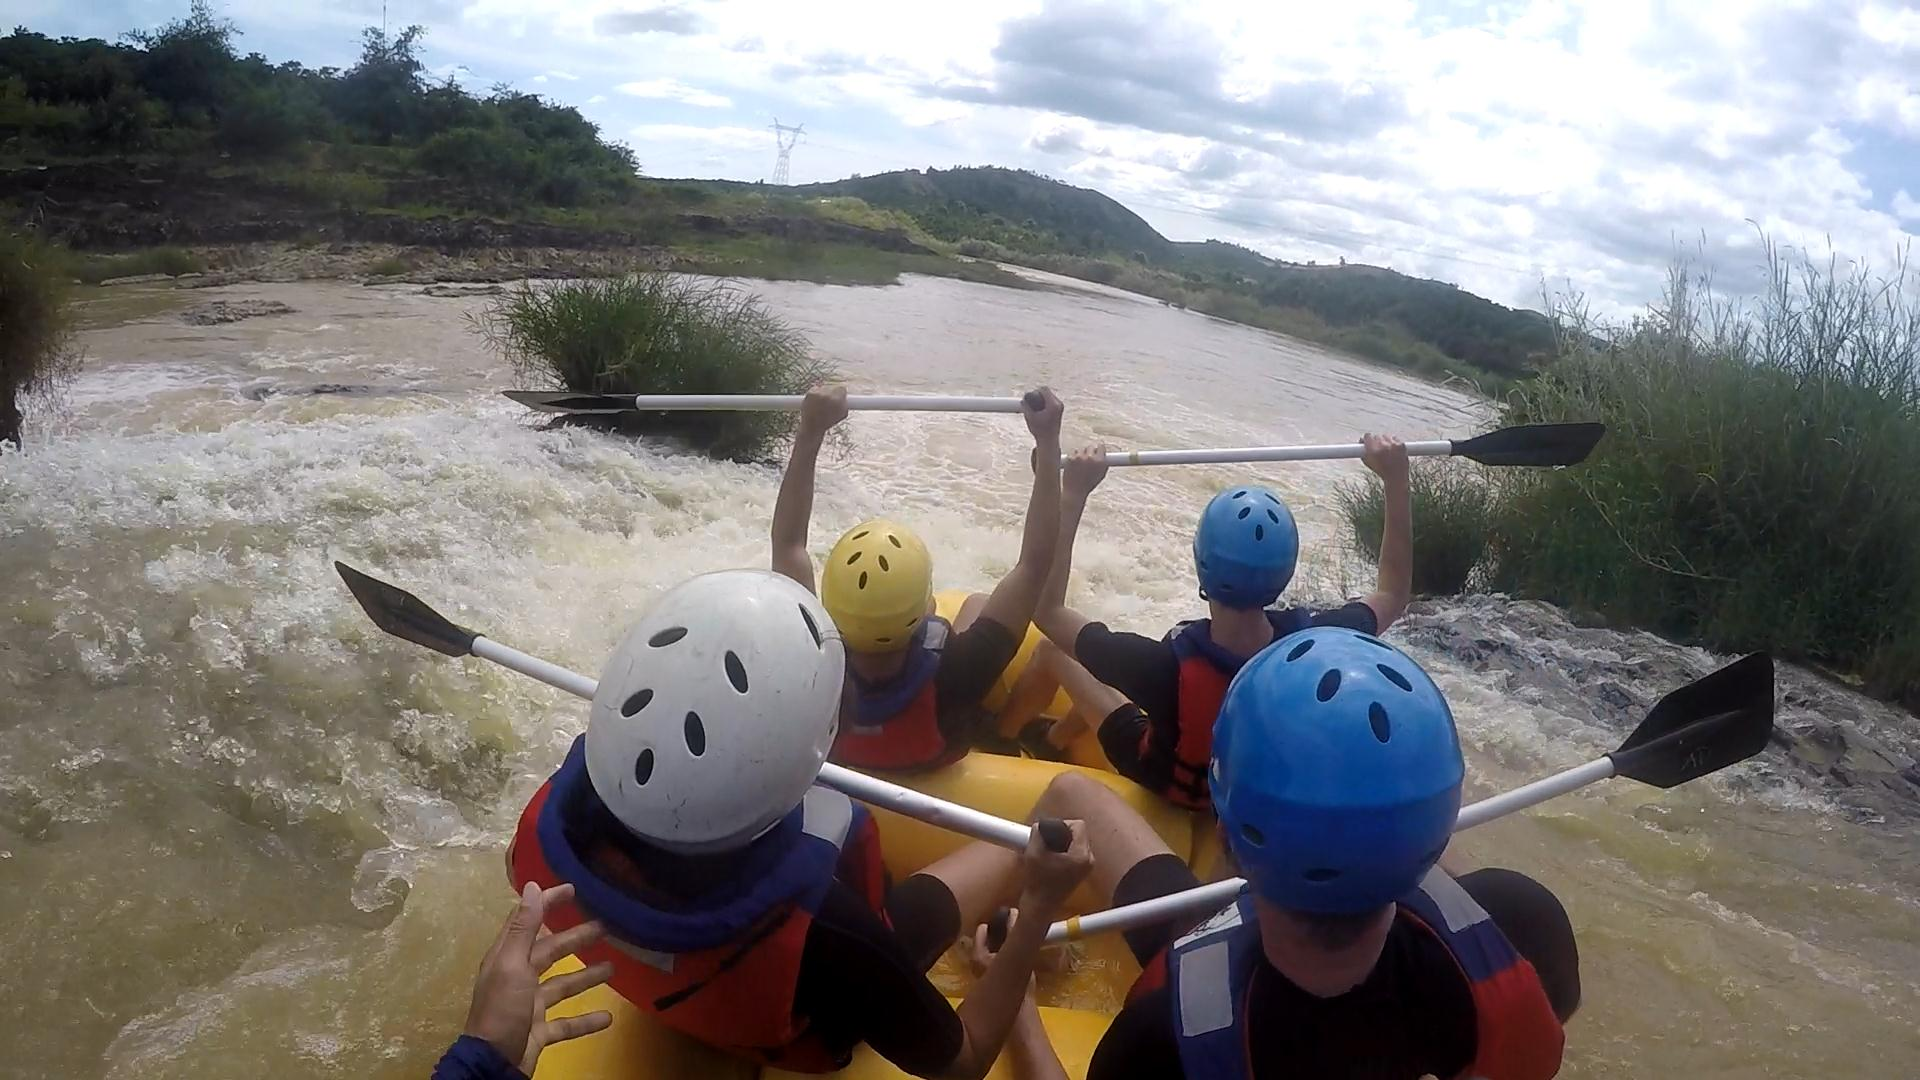 Rafting - a great experience on the Da Don river